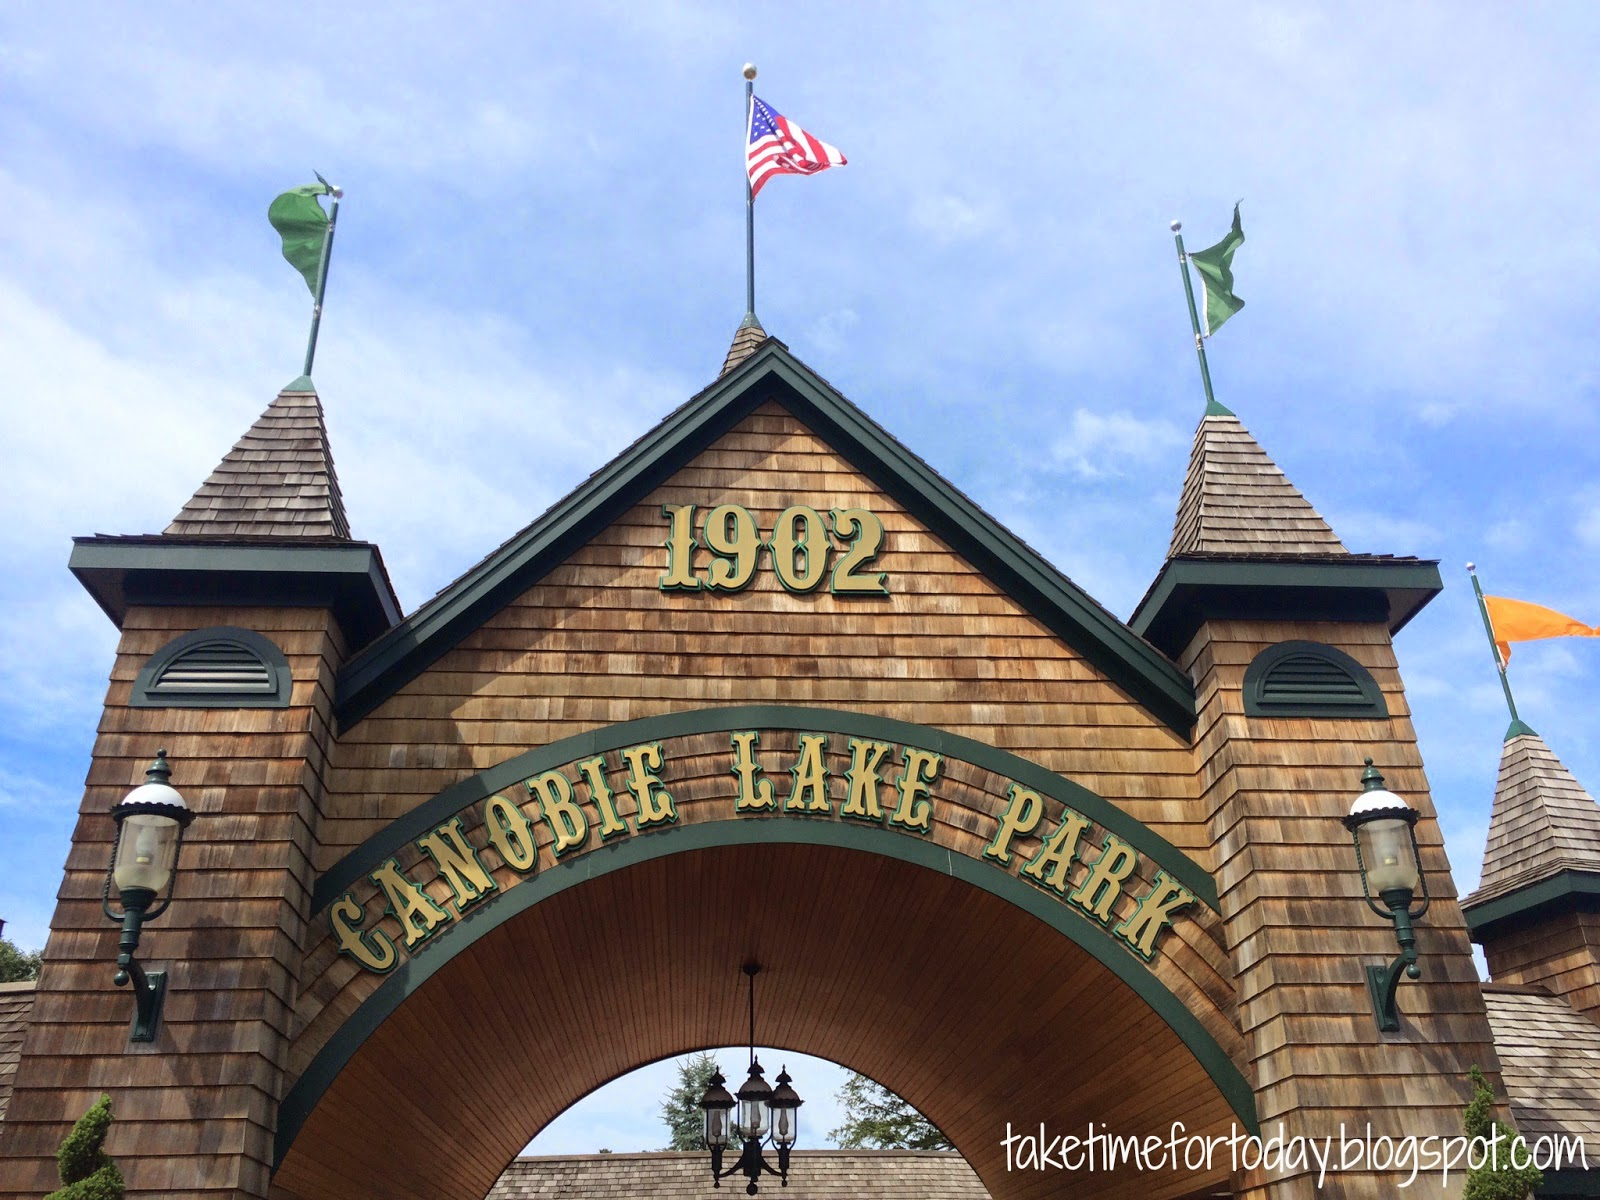 We had such a fantastic time at Canobie Lake Park last weekend! Canobie Lake Park is an amusement park located in Salem New H&shire that is packed full ... & Take Time for Today: Canobie Lake Park